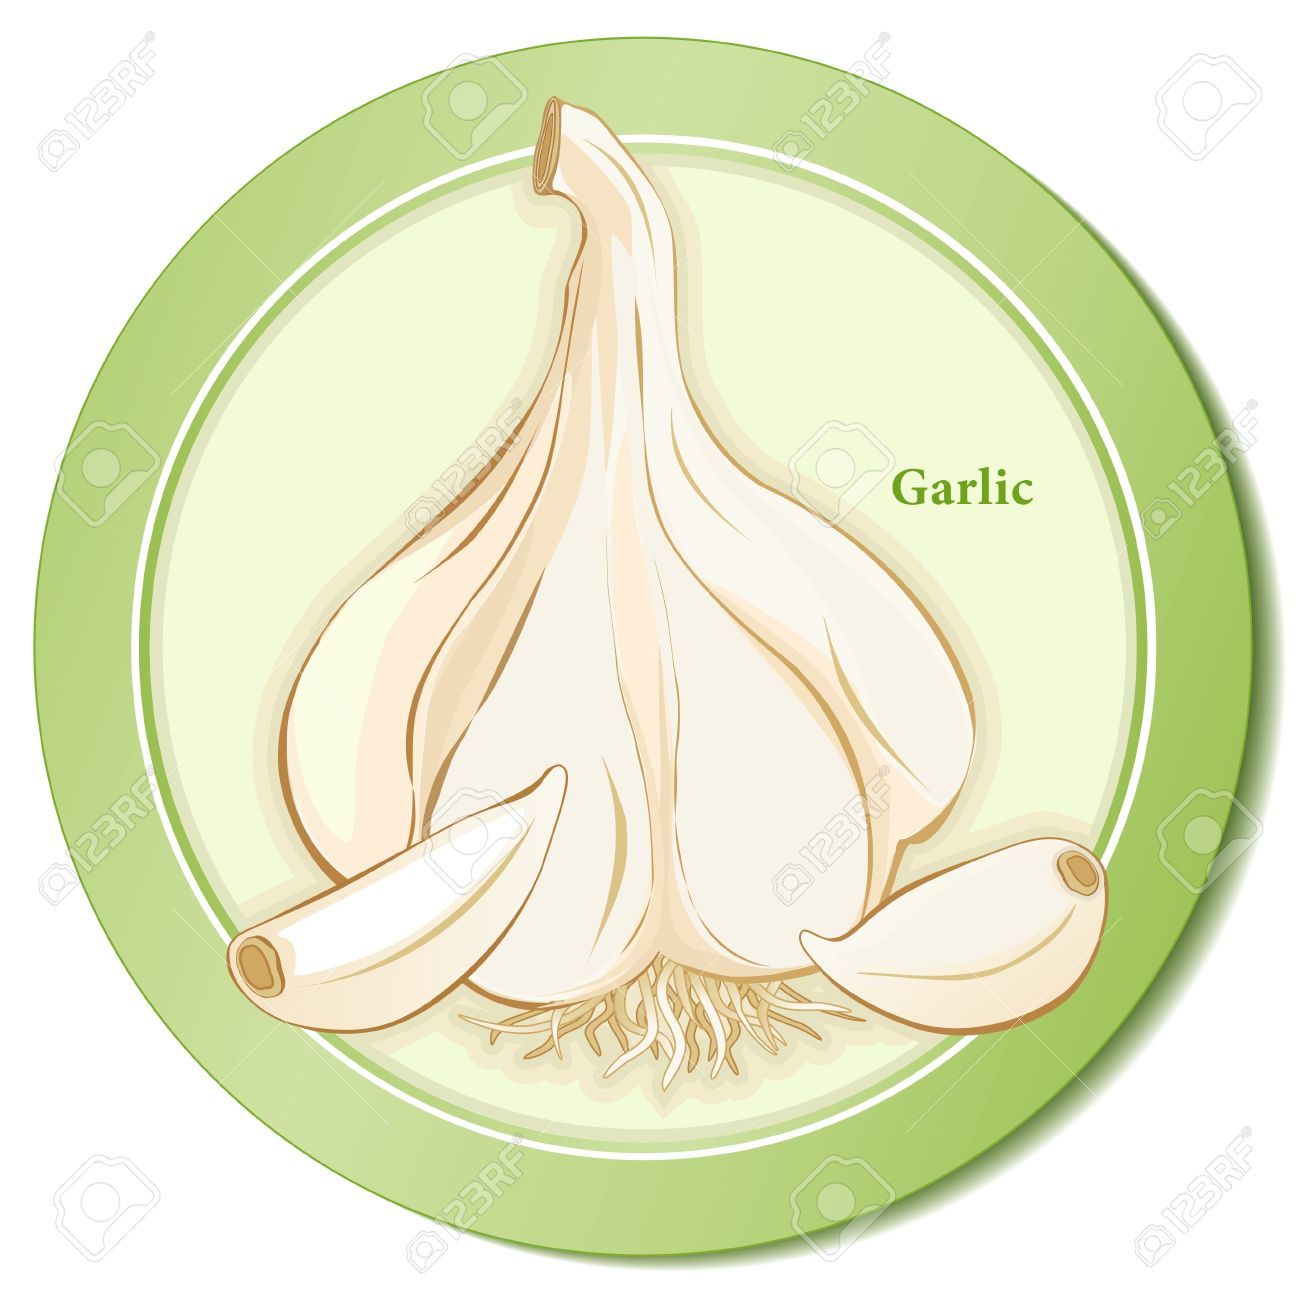 Garlic Herb Bulb And Cloves Icon Royalty Free Cliparts, Vectors.